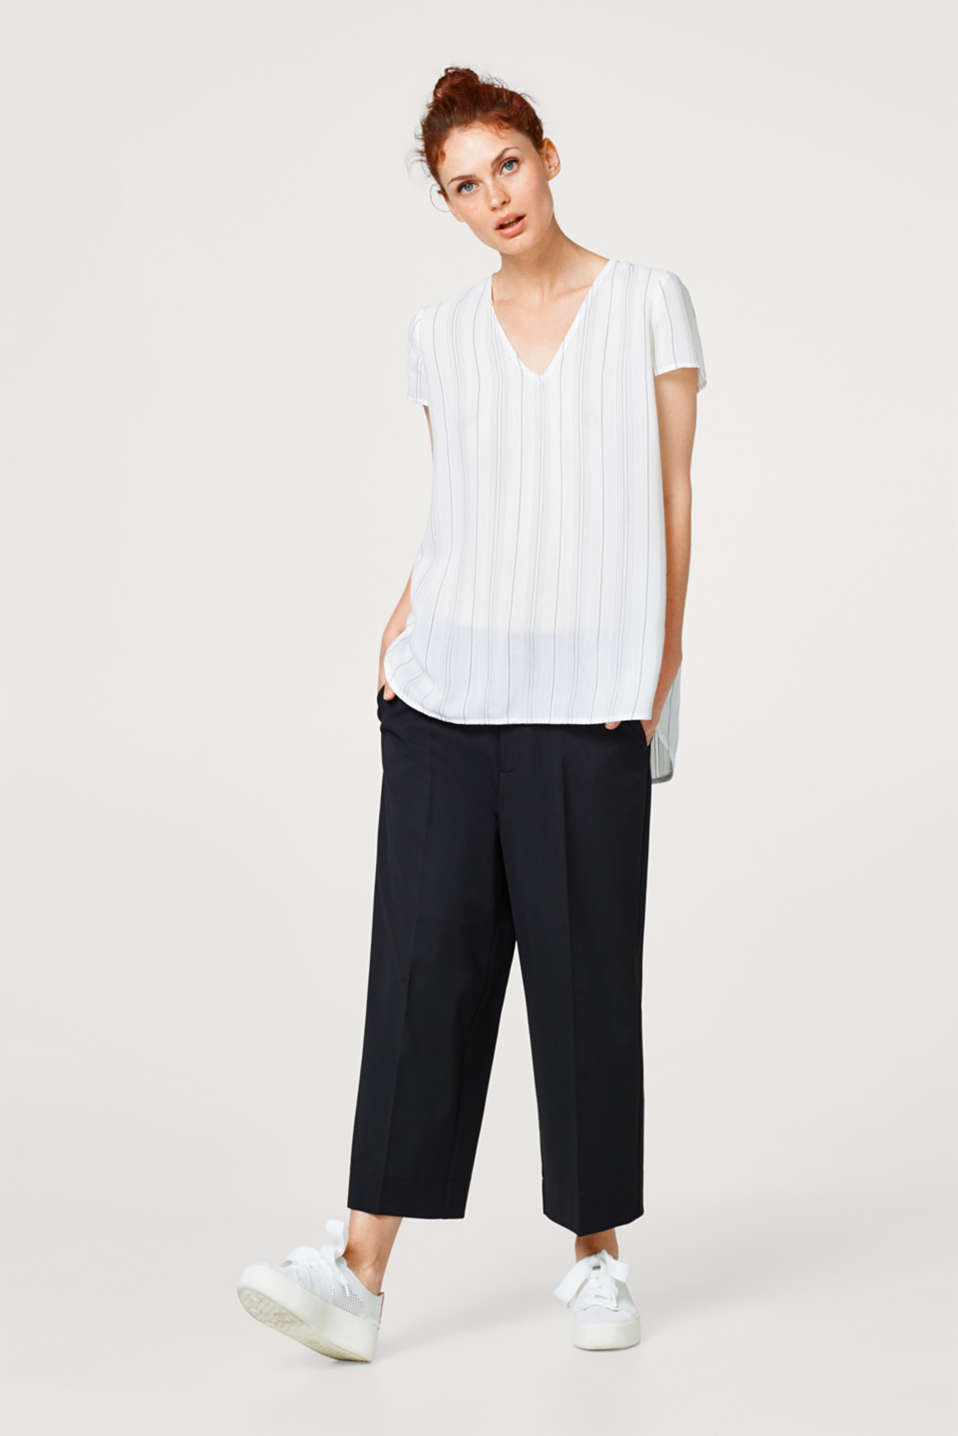 Long blouse top with woven stripes